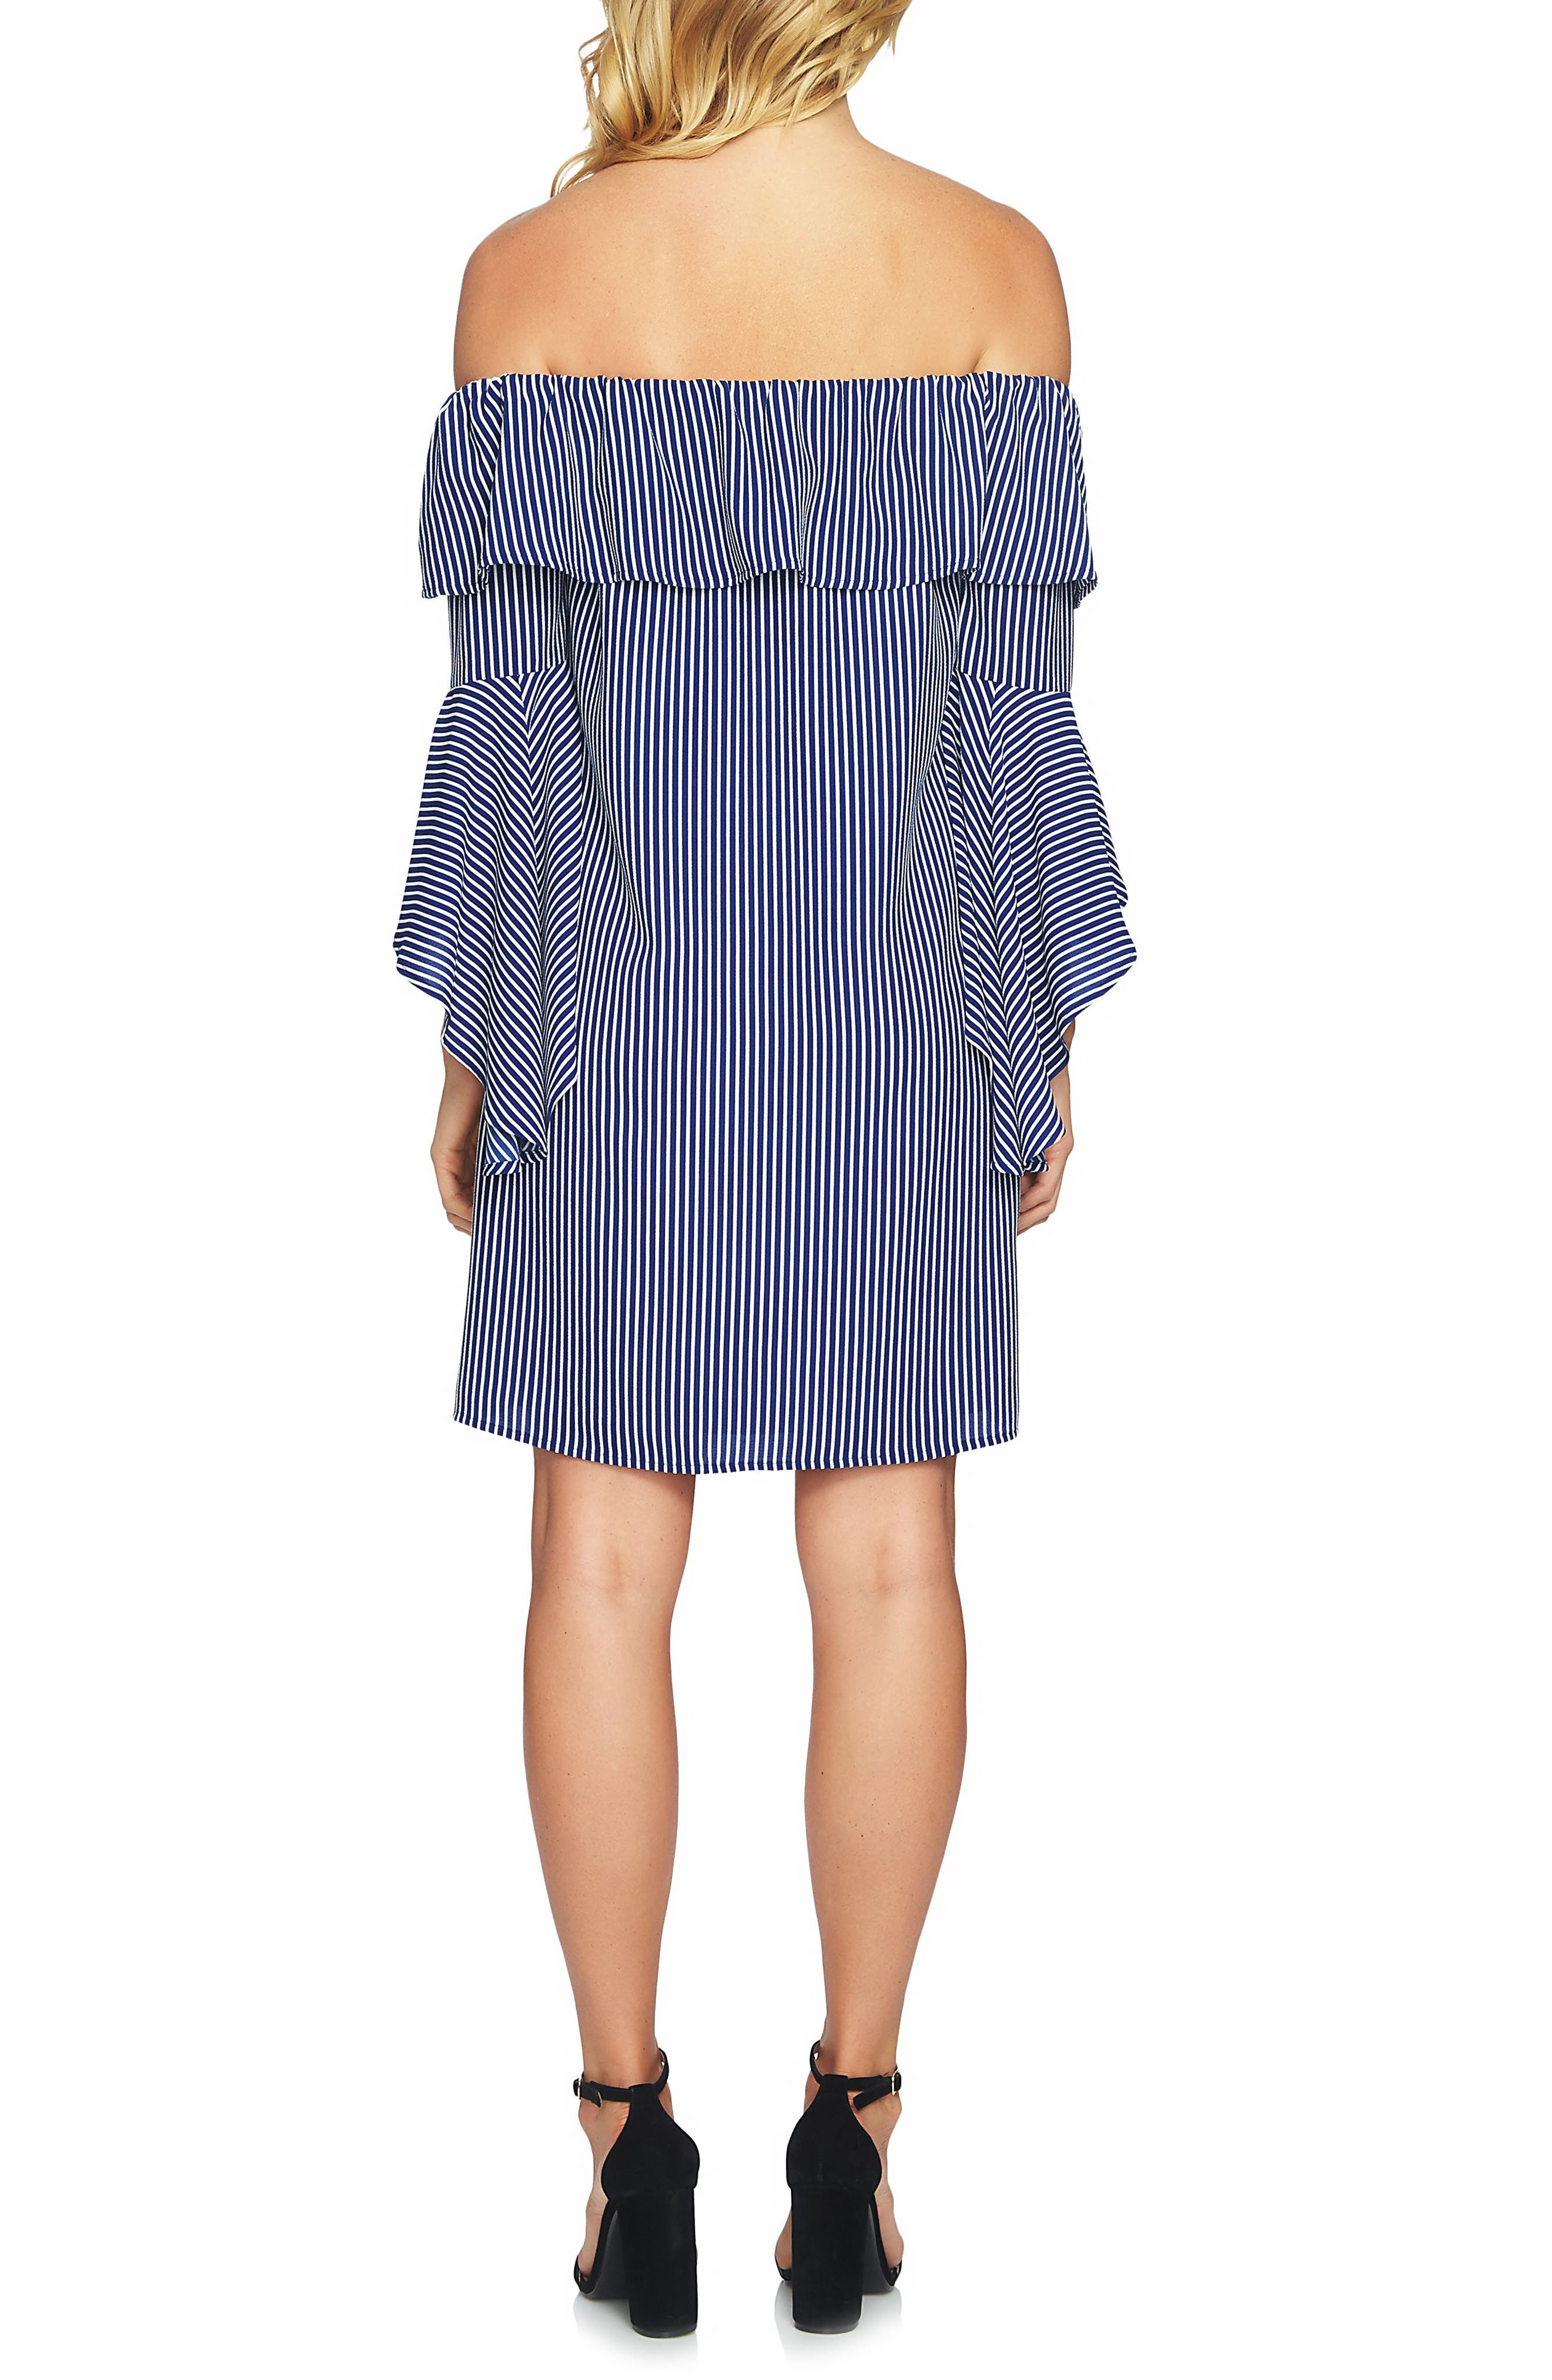 Off the Shoulder Shift Dress,                             Alternate thumbnail 2, color,                             436